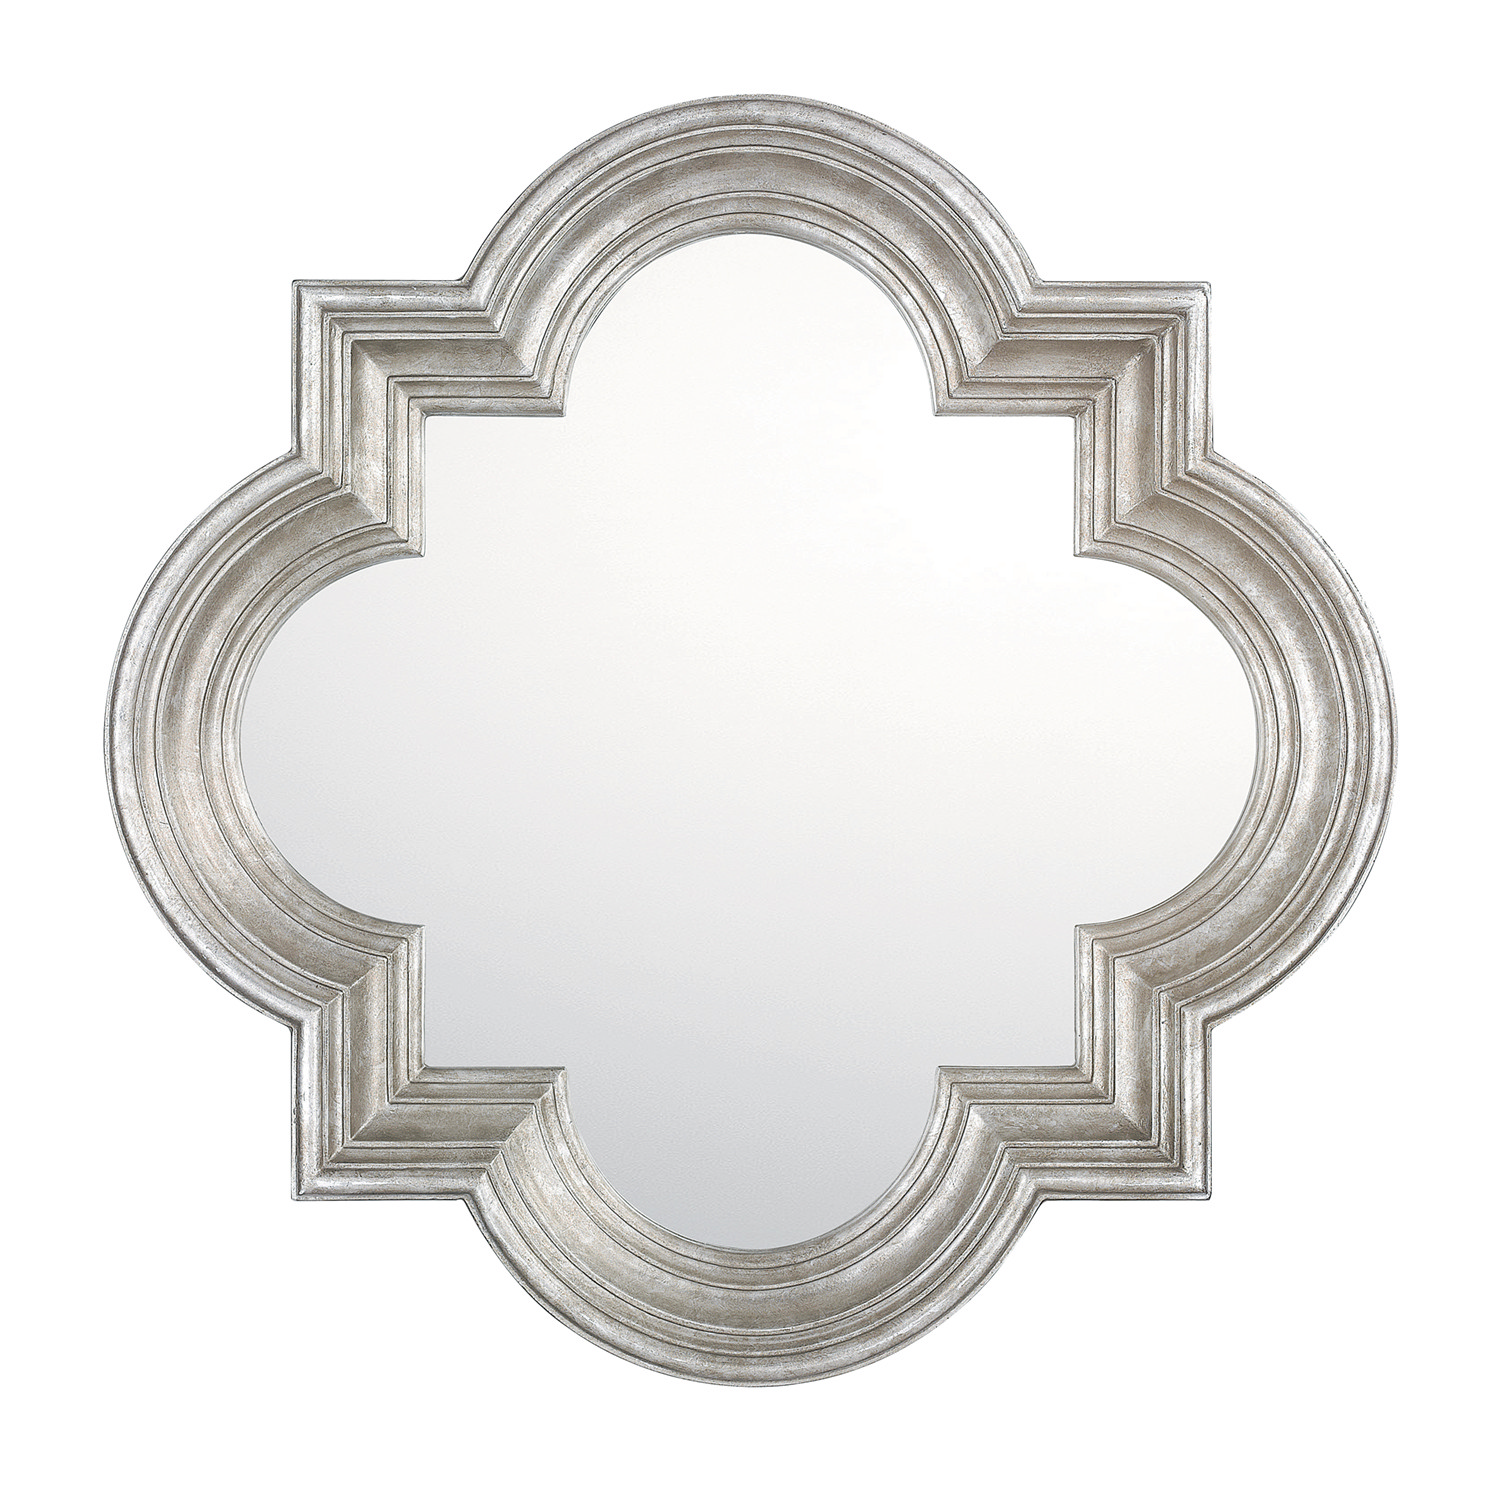 Decorative Mirror from the Mirrors collection by Capital Lighting M343493